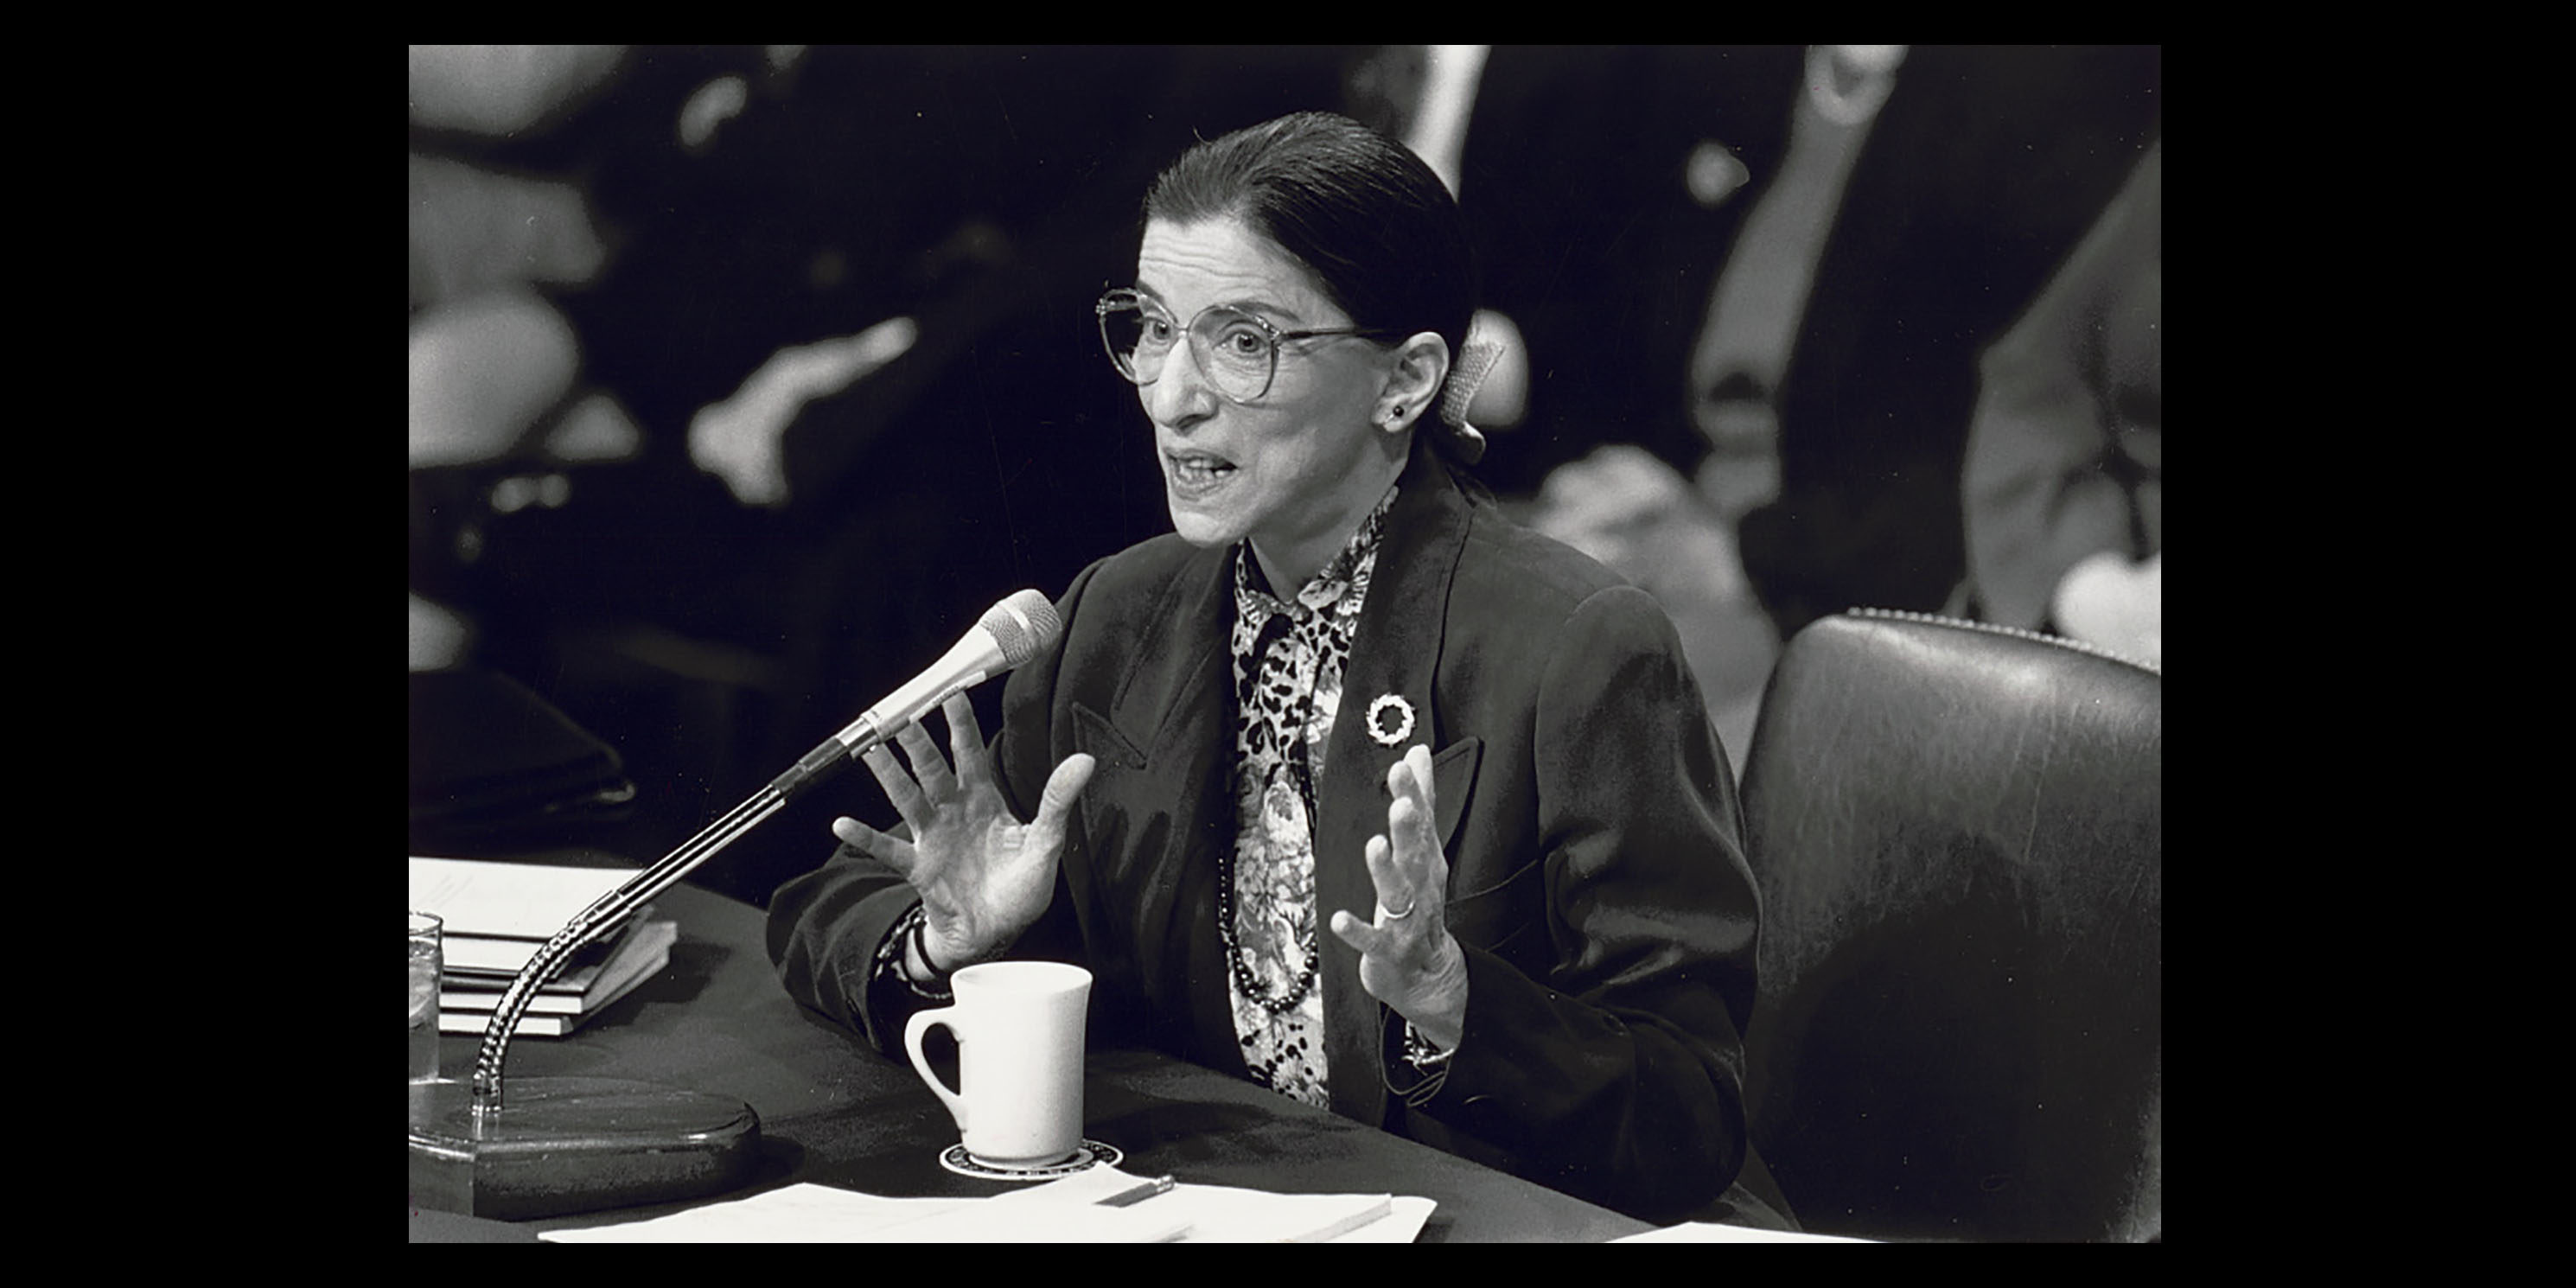 Ruth Bader Ginsburg speaks at her confirmation hearing